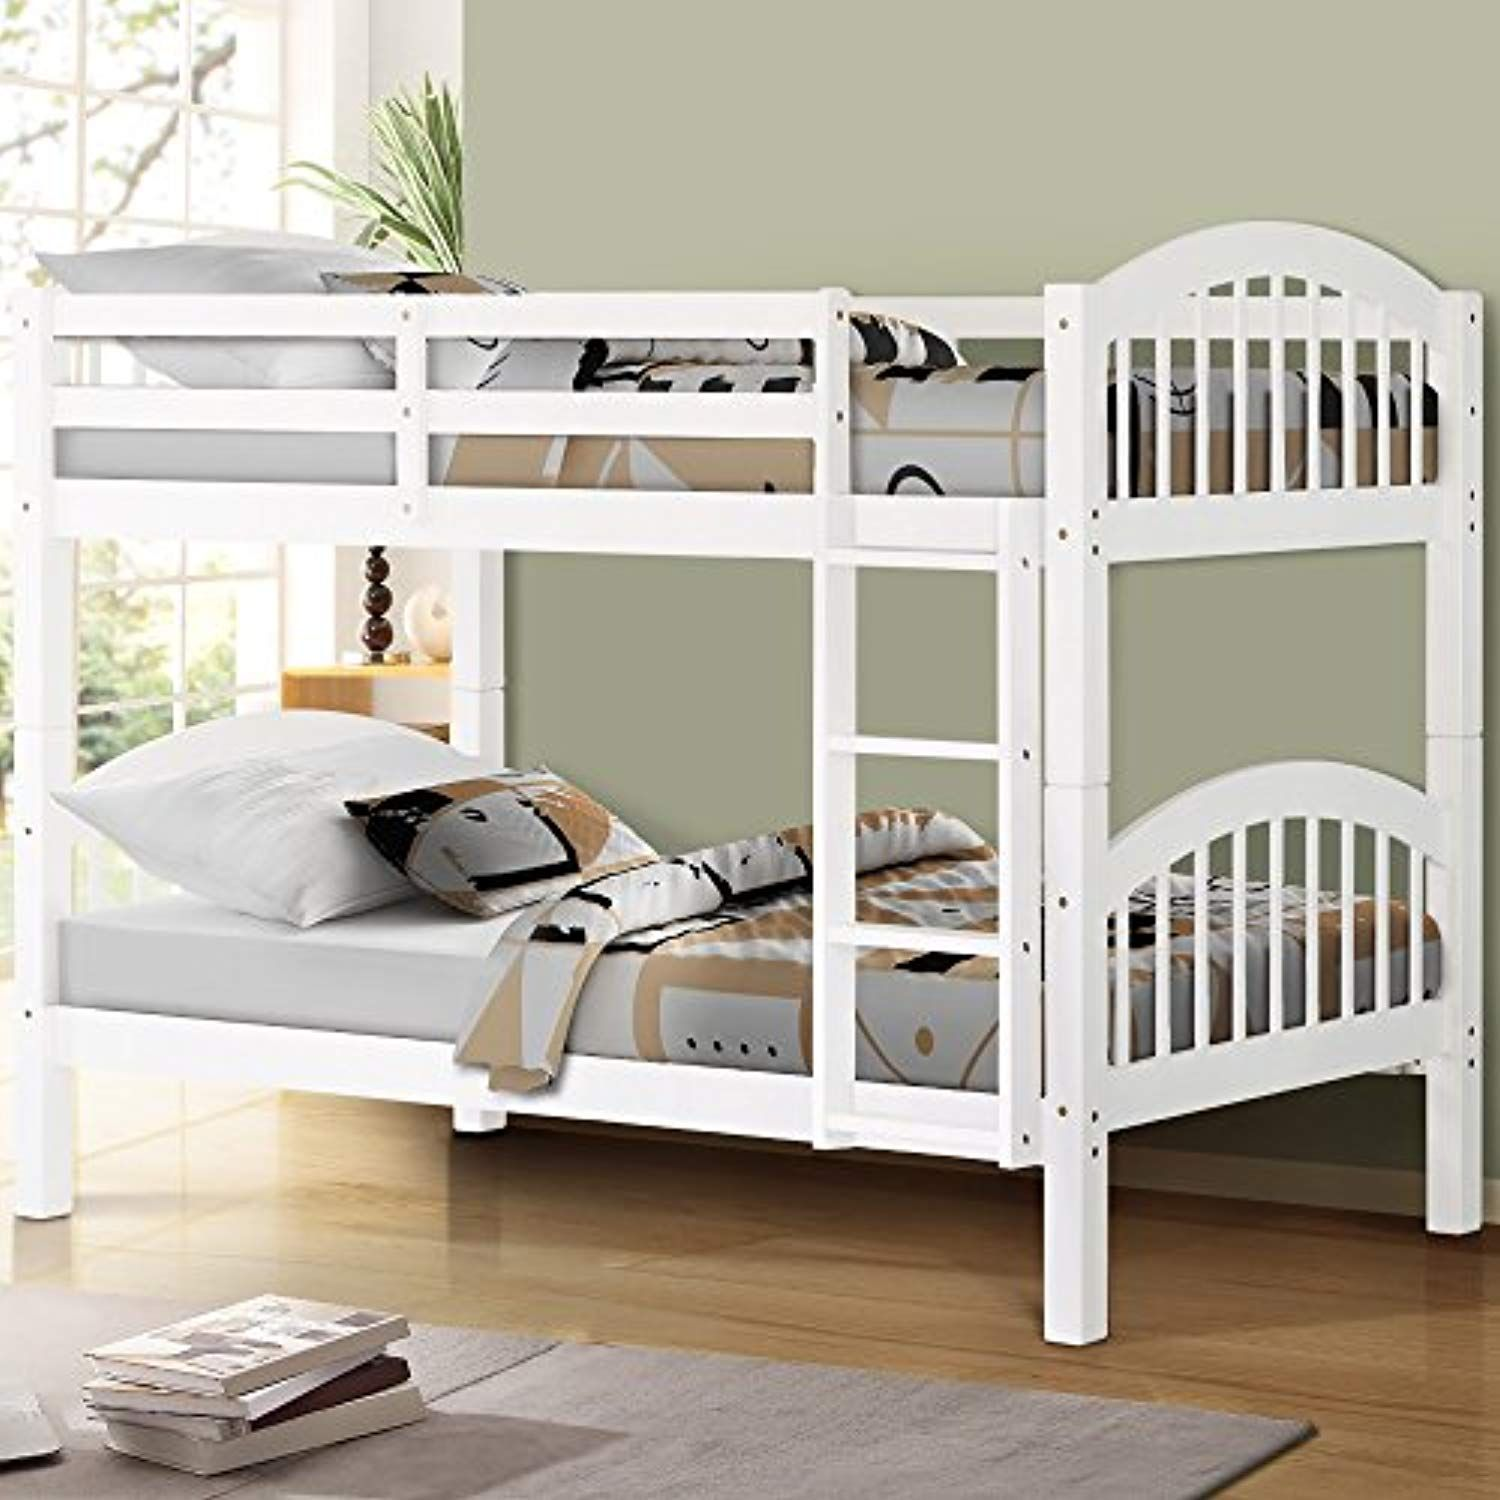 HarperandBright Designs TwinOverTwin Solid Wood Bunk Bed